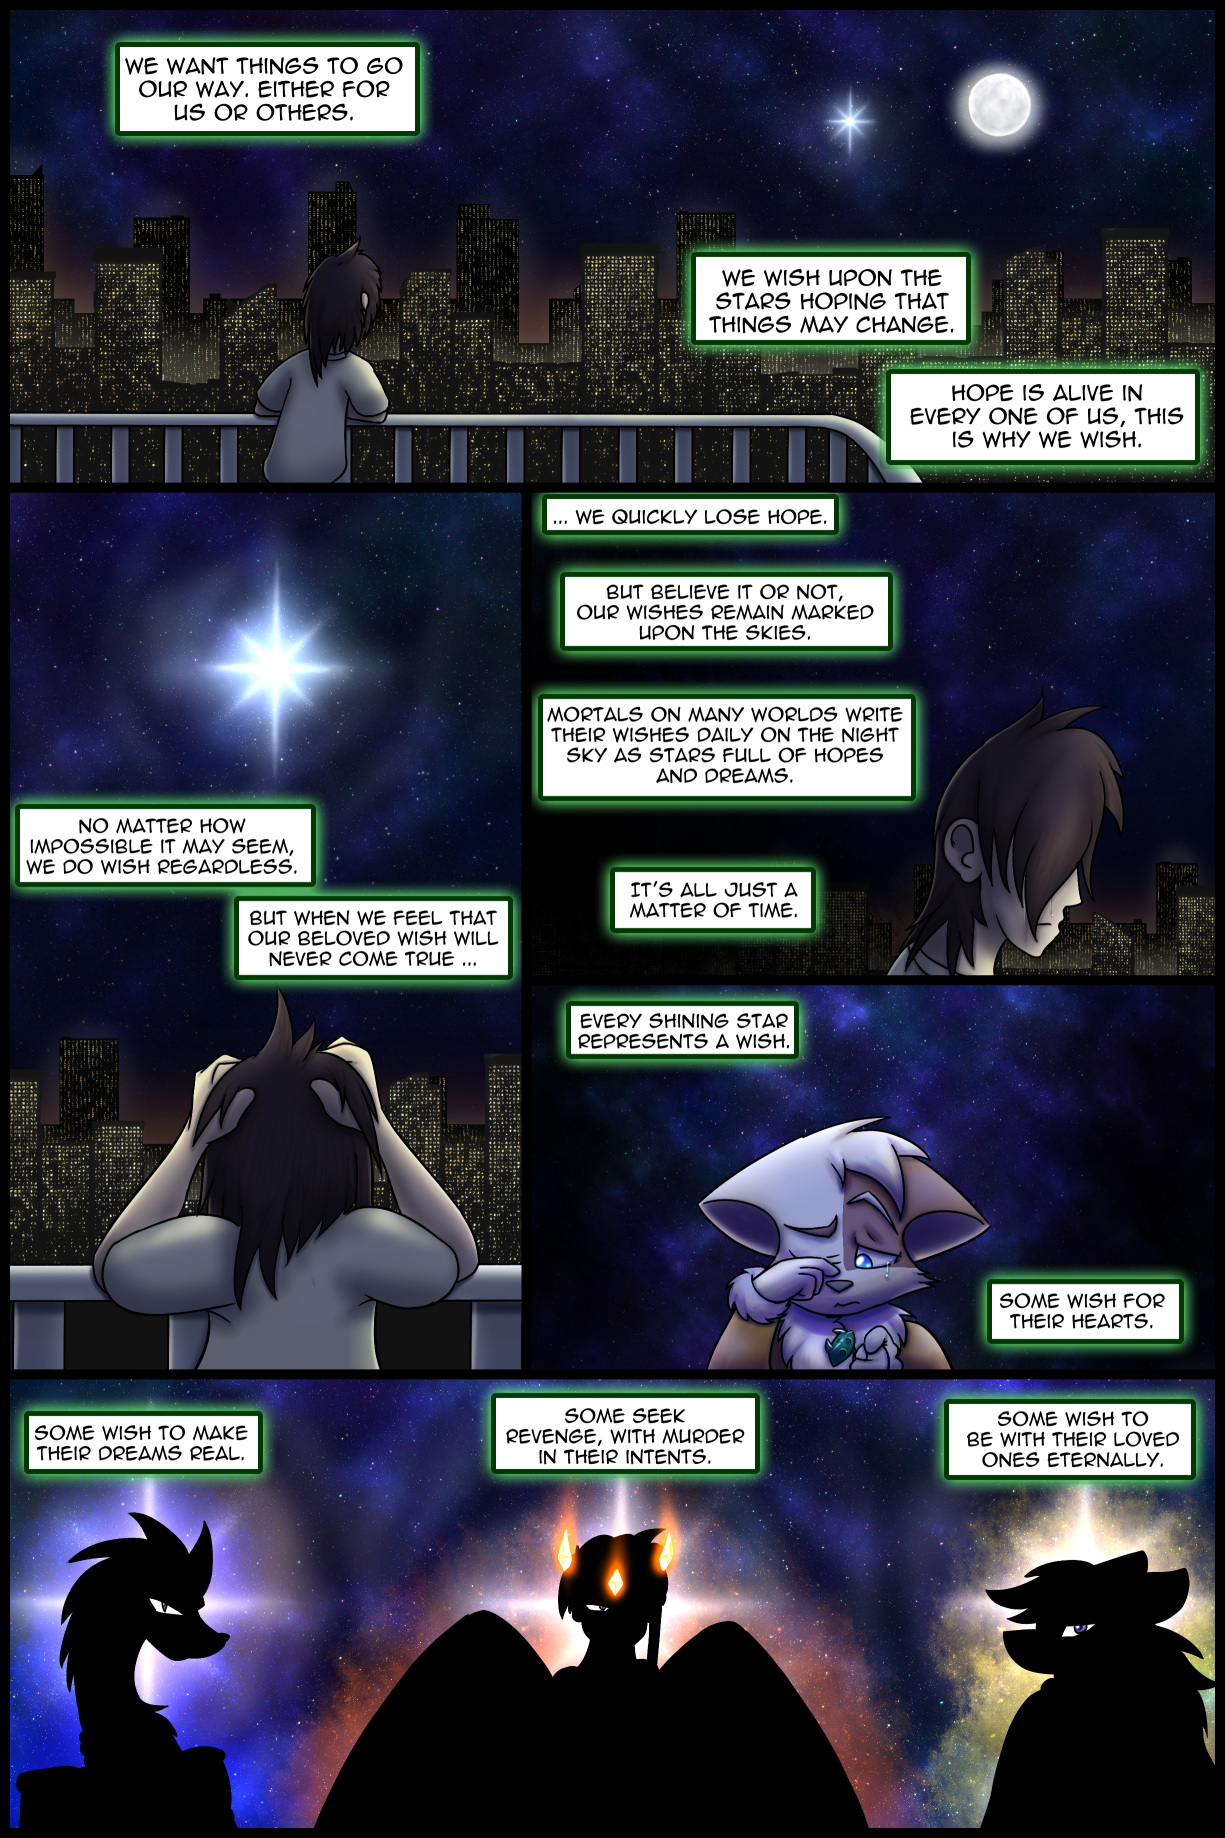 Ch0 Remastered Page 1-2 – Desperately Wishing – All Kinds of Wishes